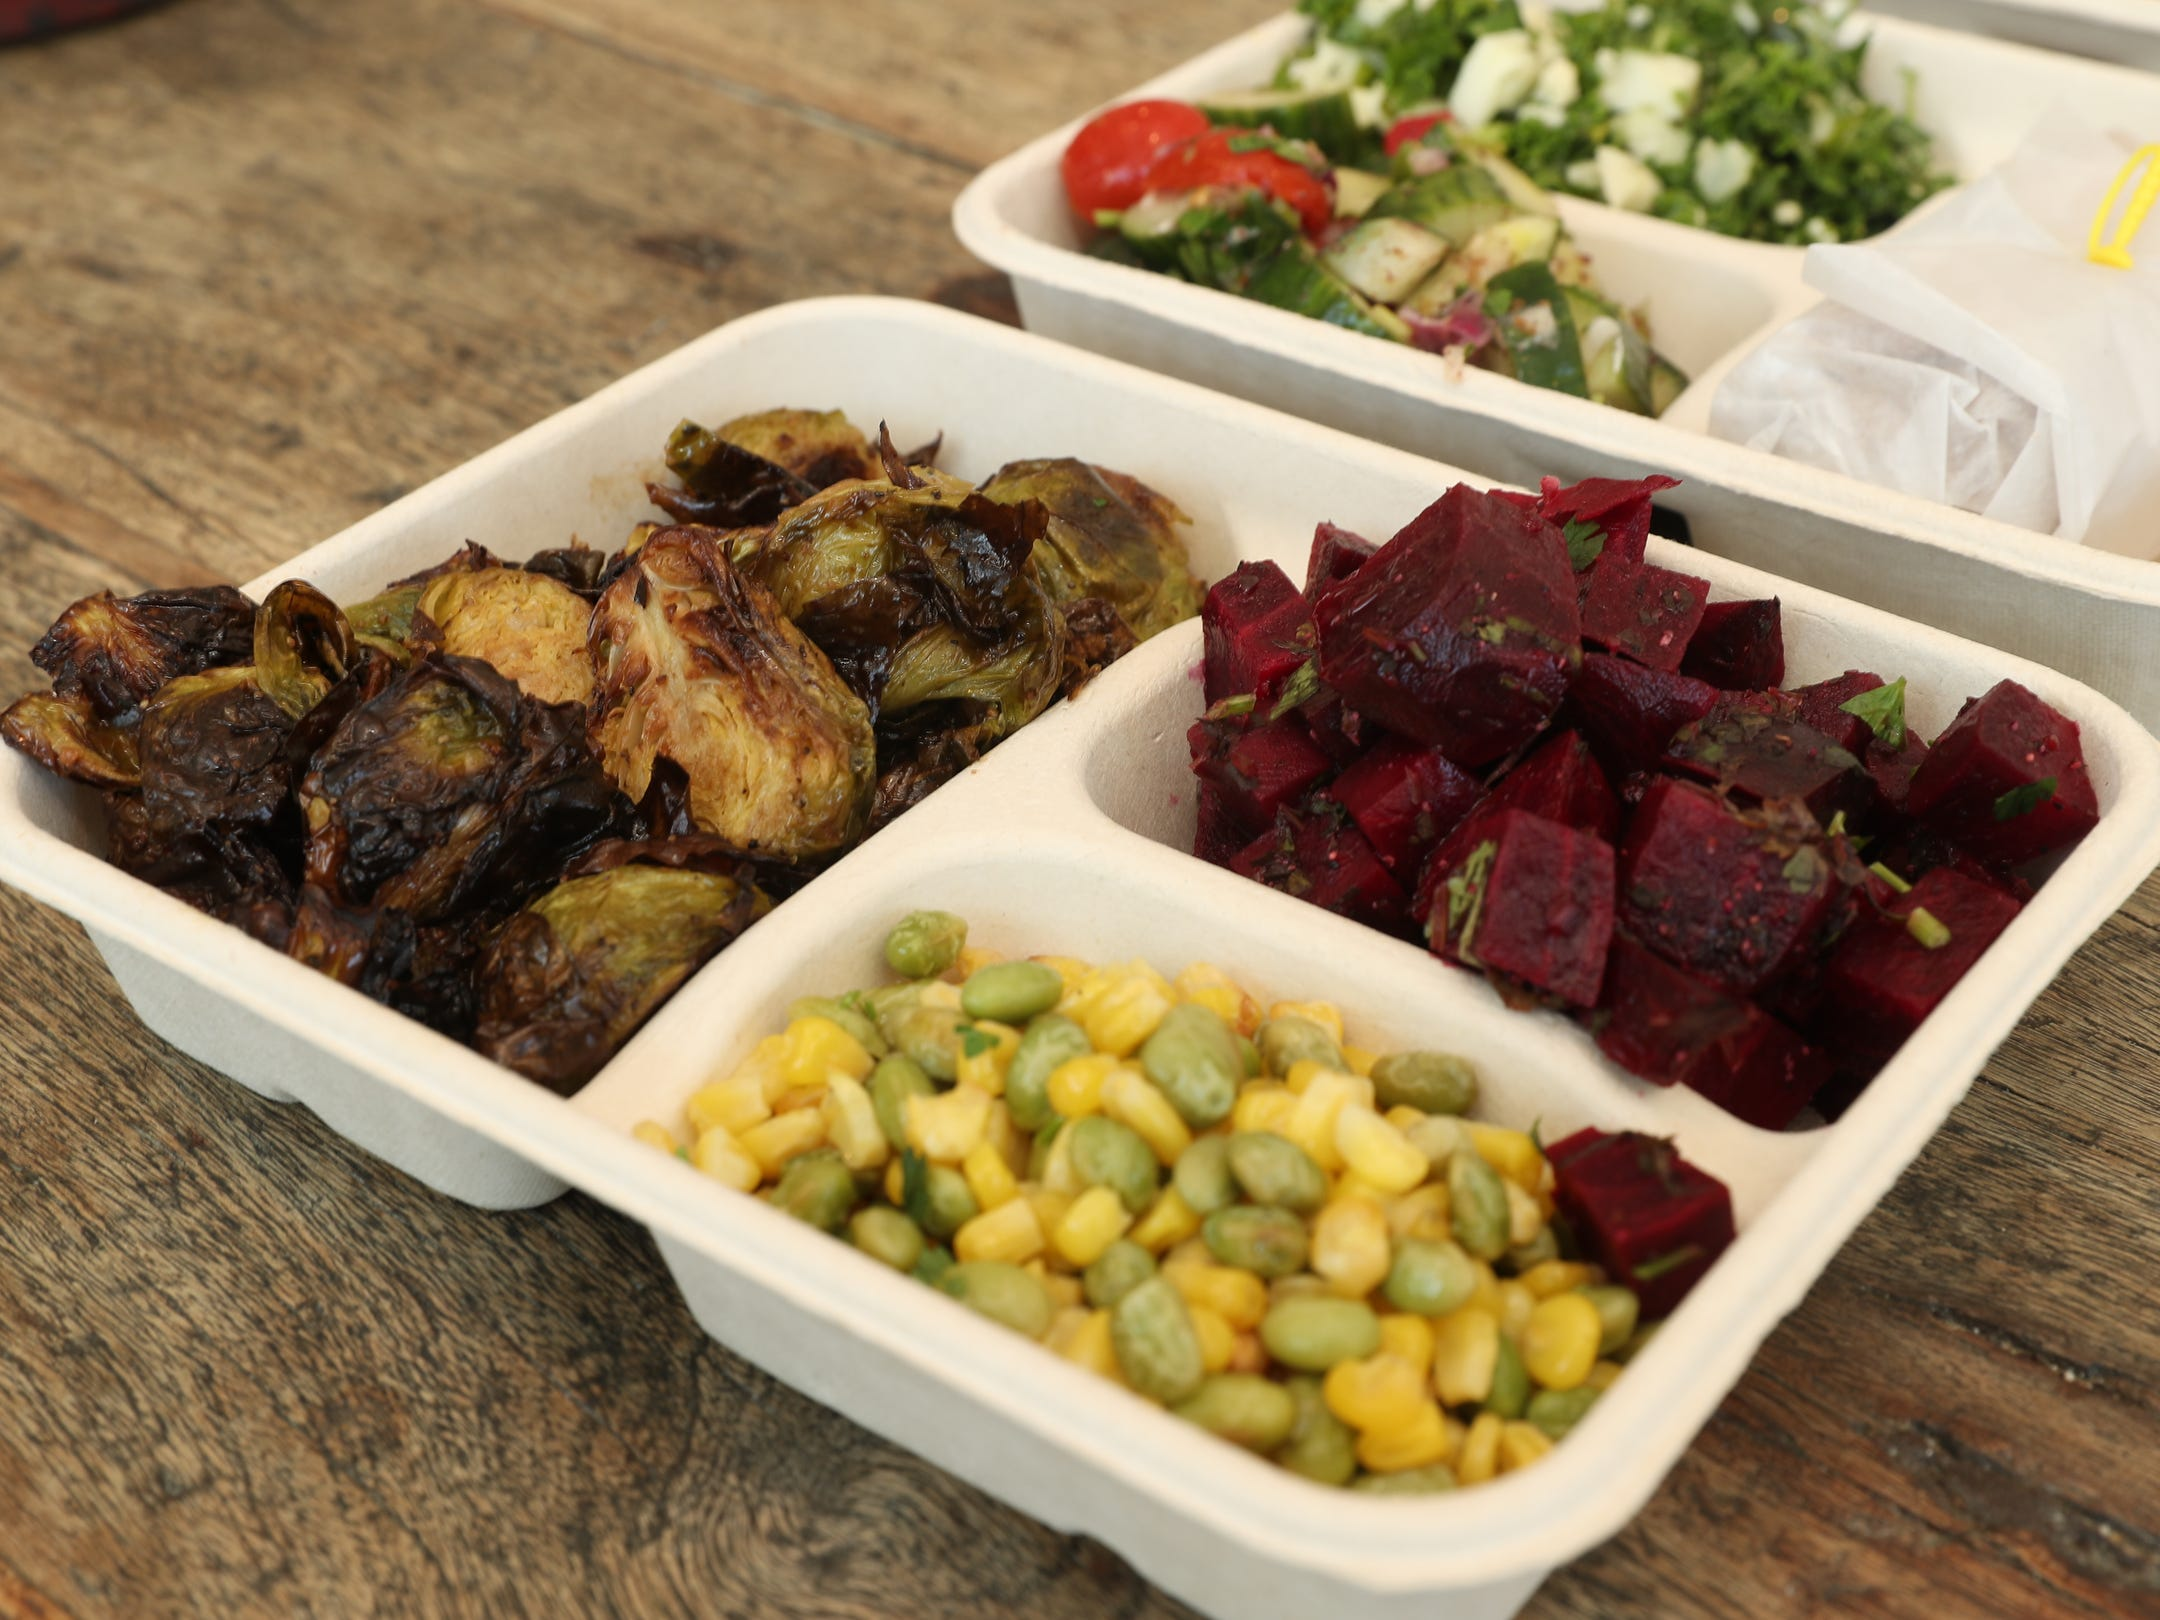 The Market Platter, with Roasted Brussel sprouts, lime edamame and corn, and raw spicy beet salad on the menu at Happy Belly Kitchen in Sloatsburg on Wednesday, February 13, 2019.